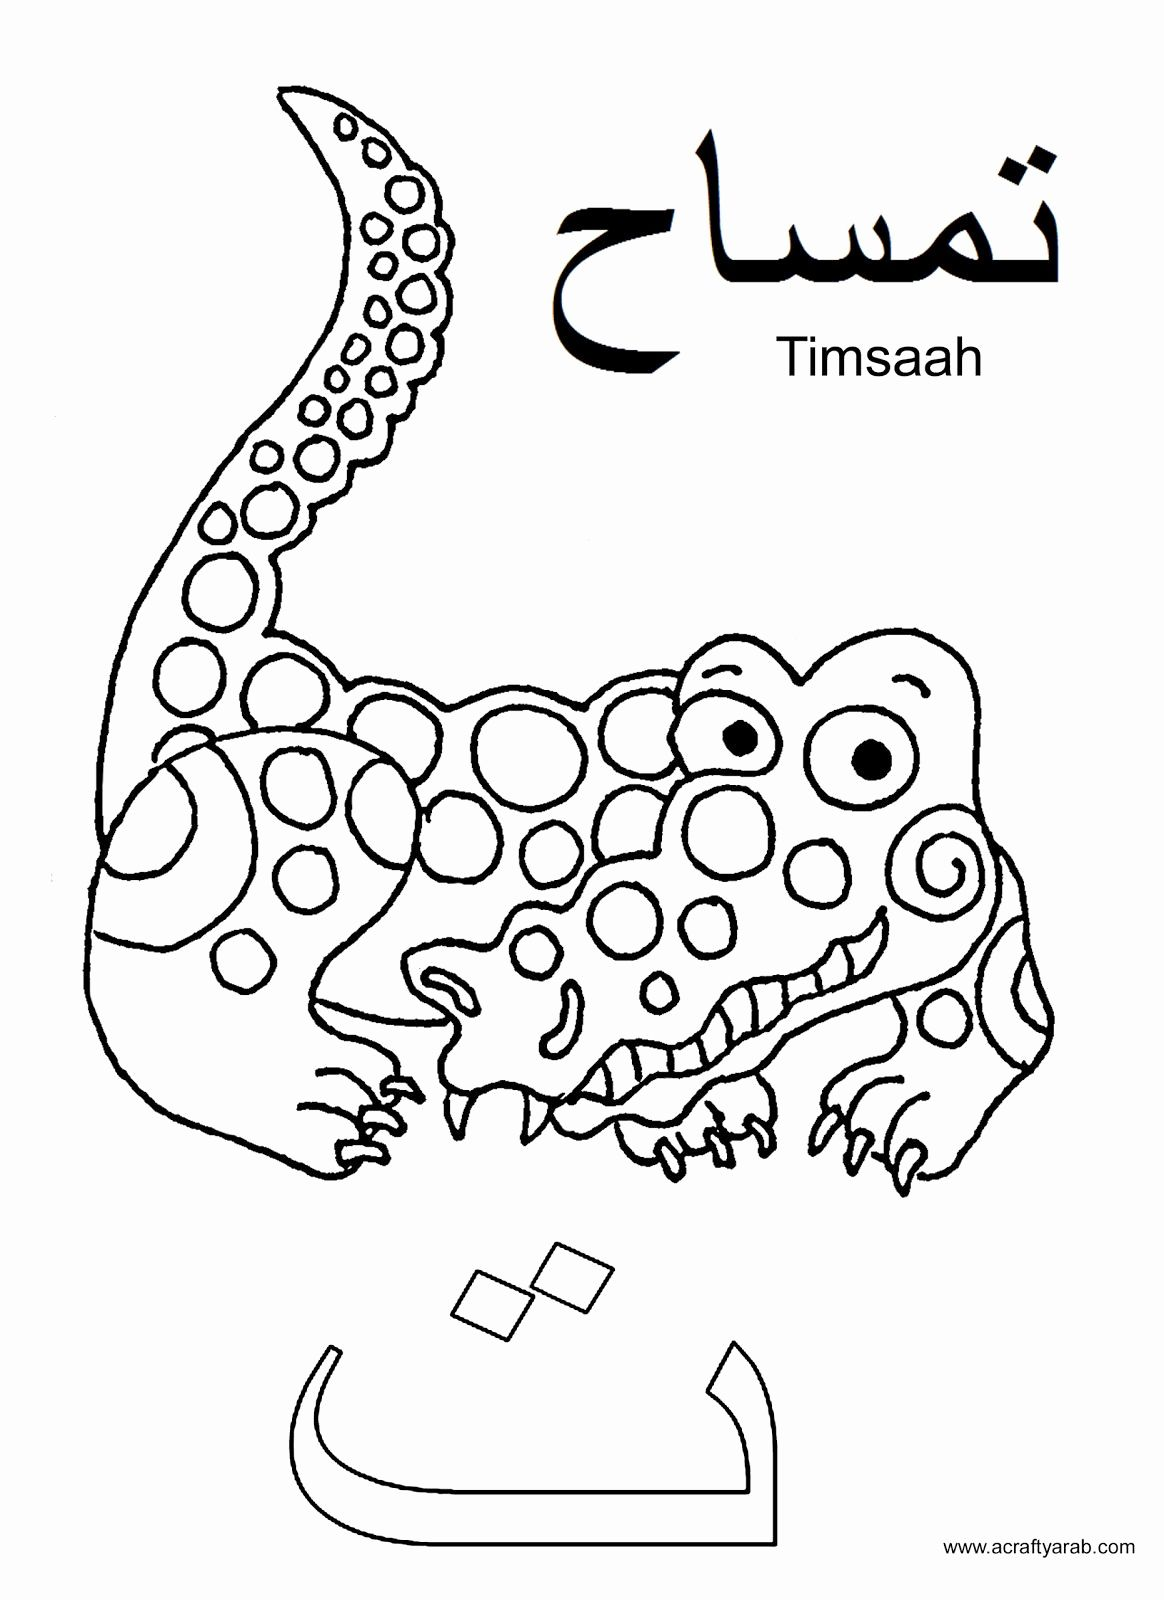 Alphabet Coloring Book Luxury Arabic Alphabet Coloring